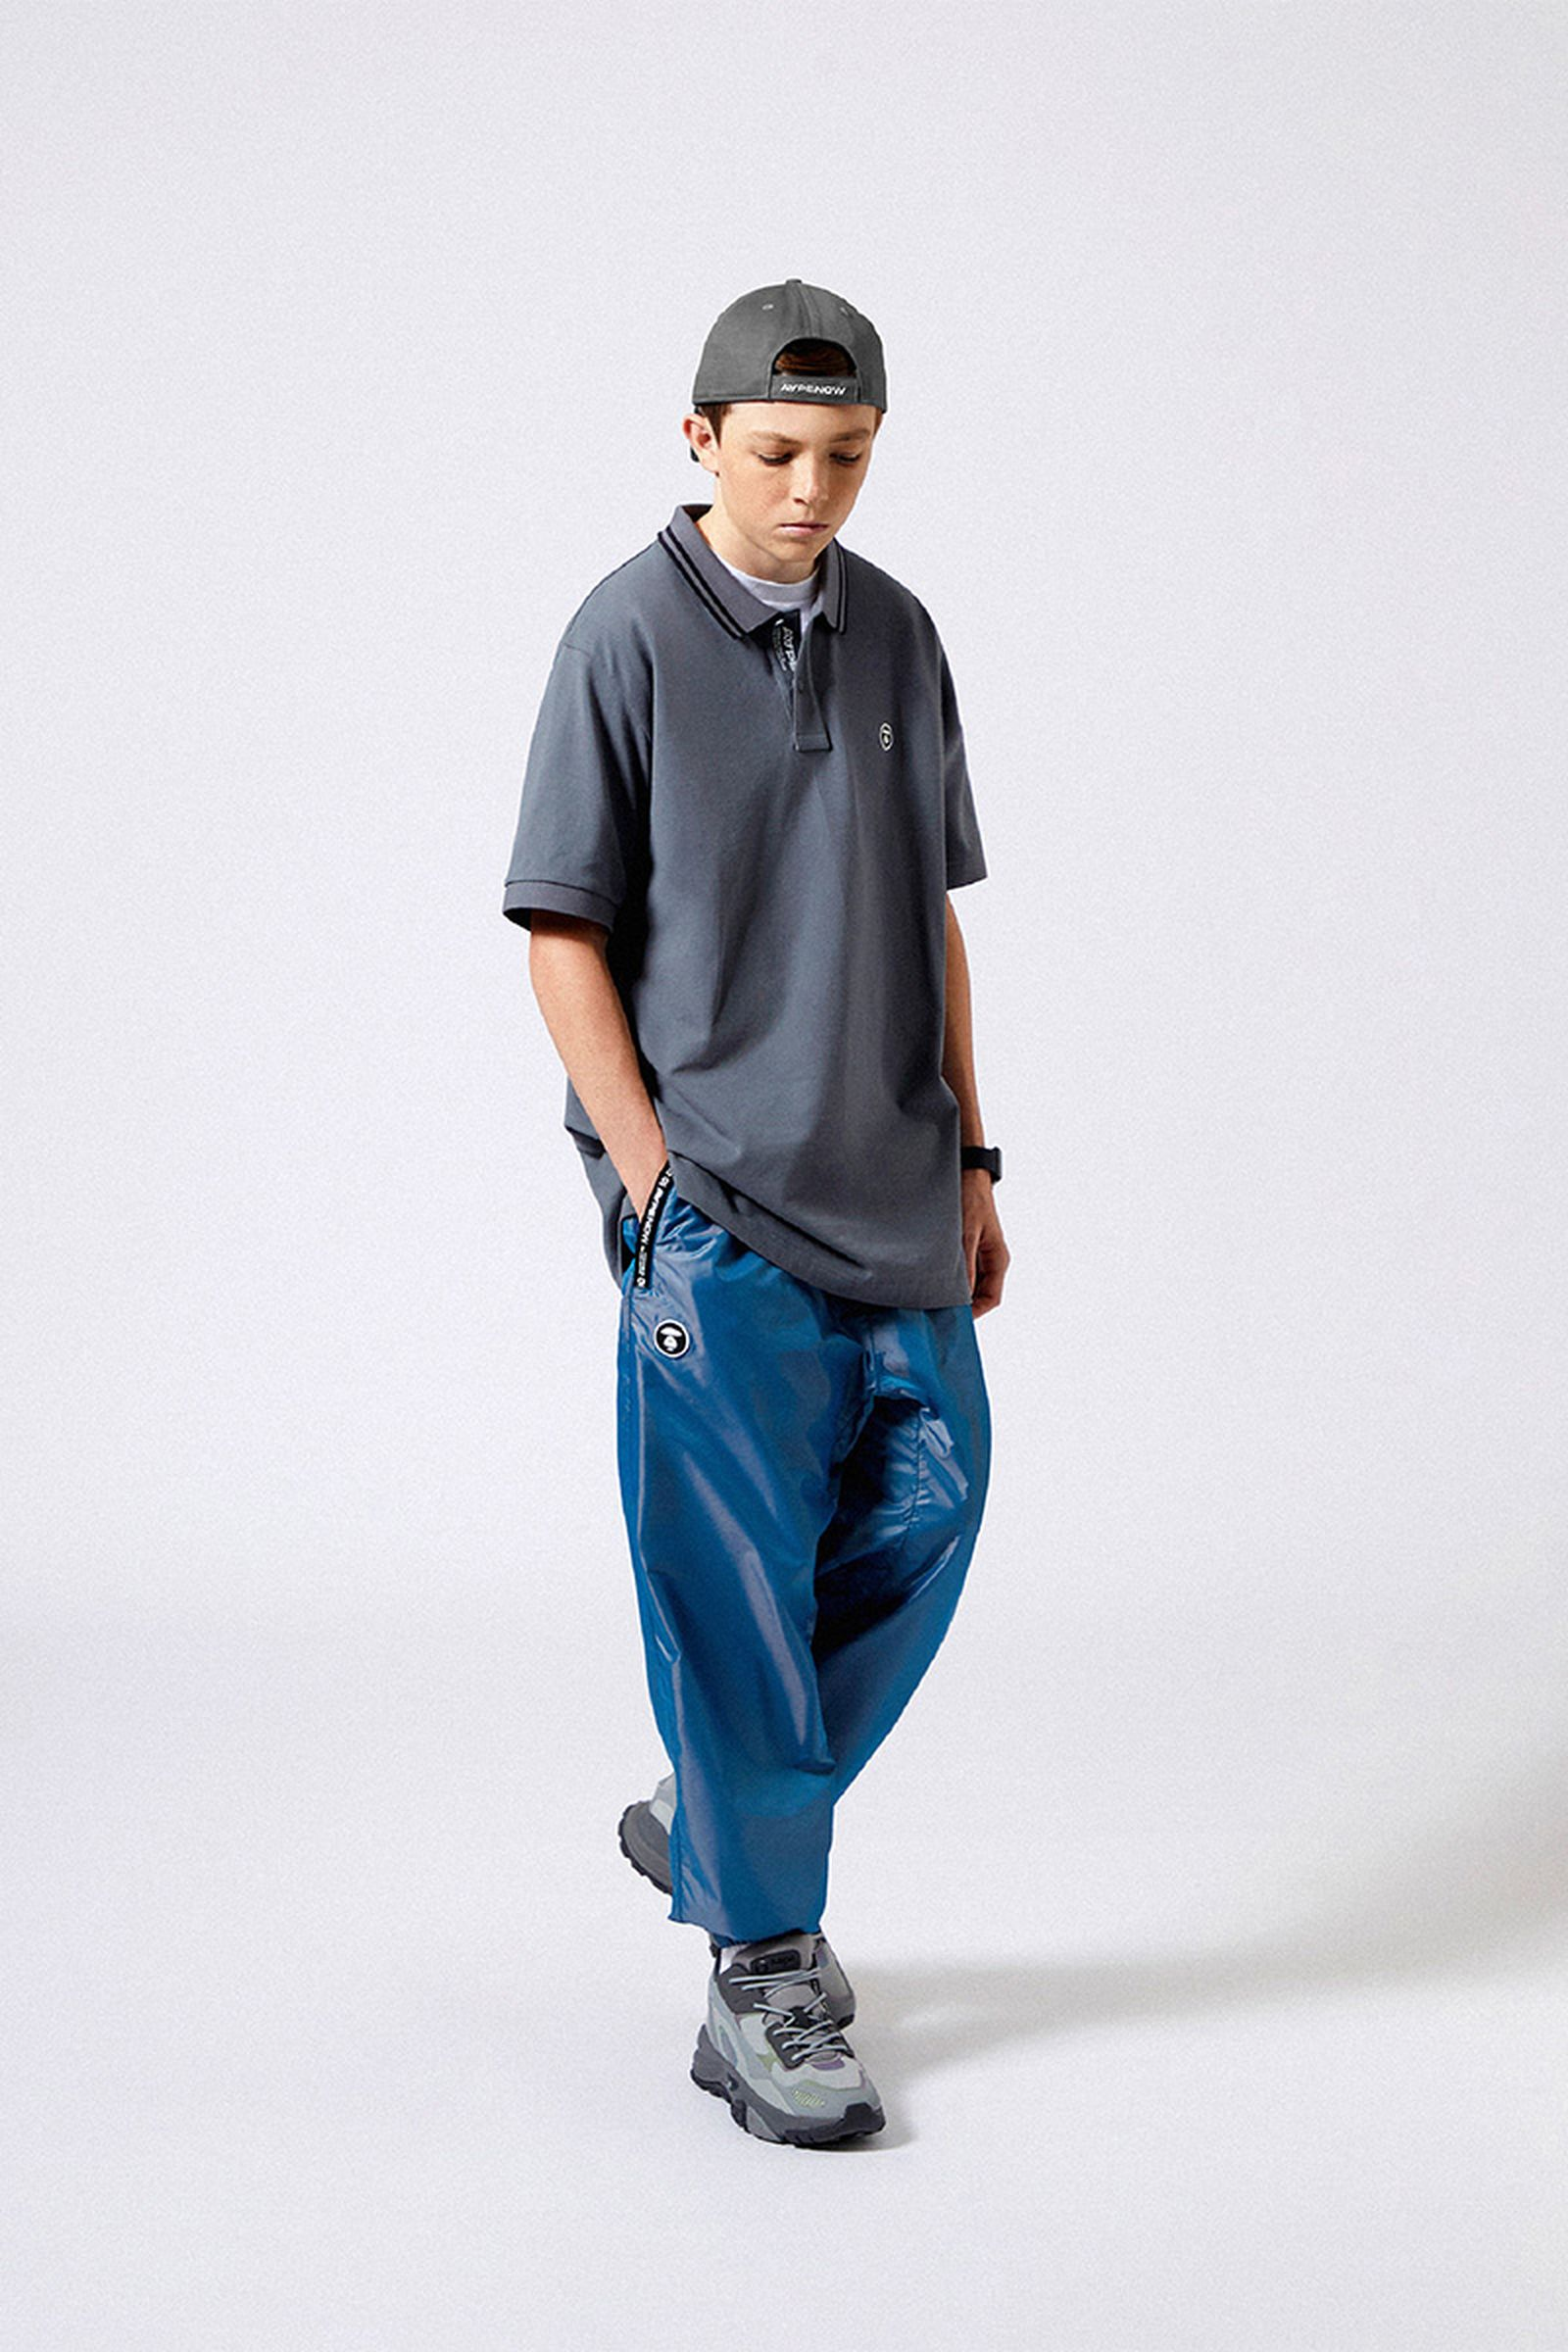 aapenow-ss21-07